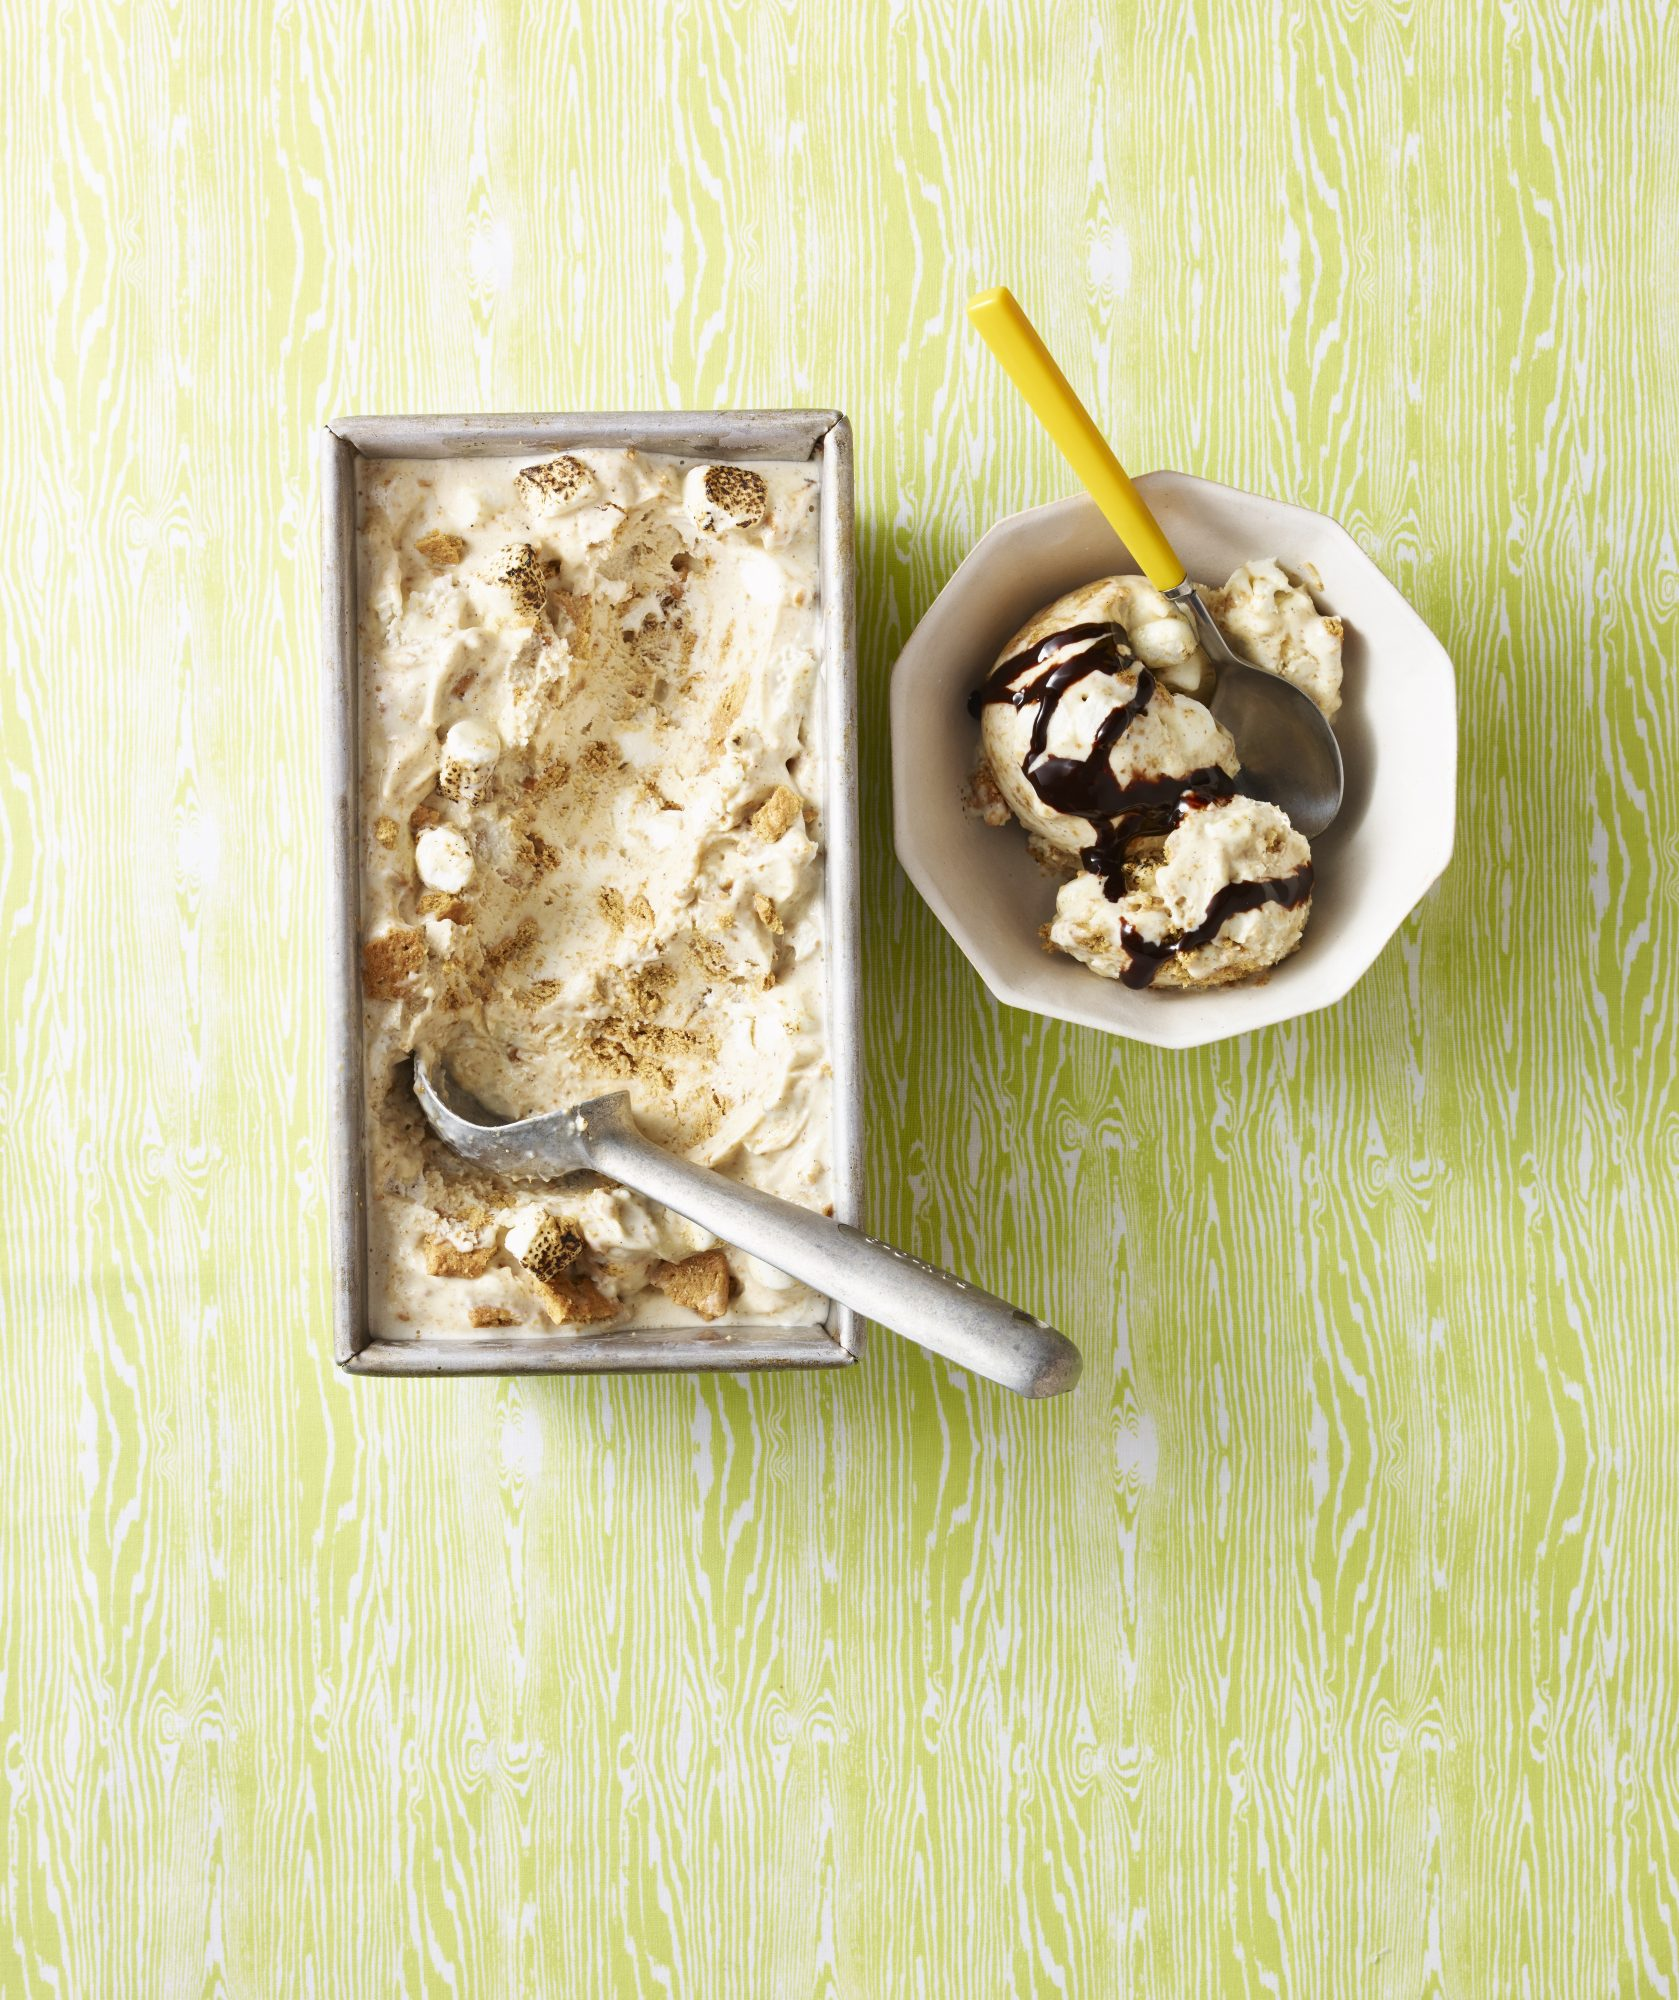 Malted S'mores Ice Cream